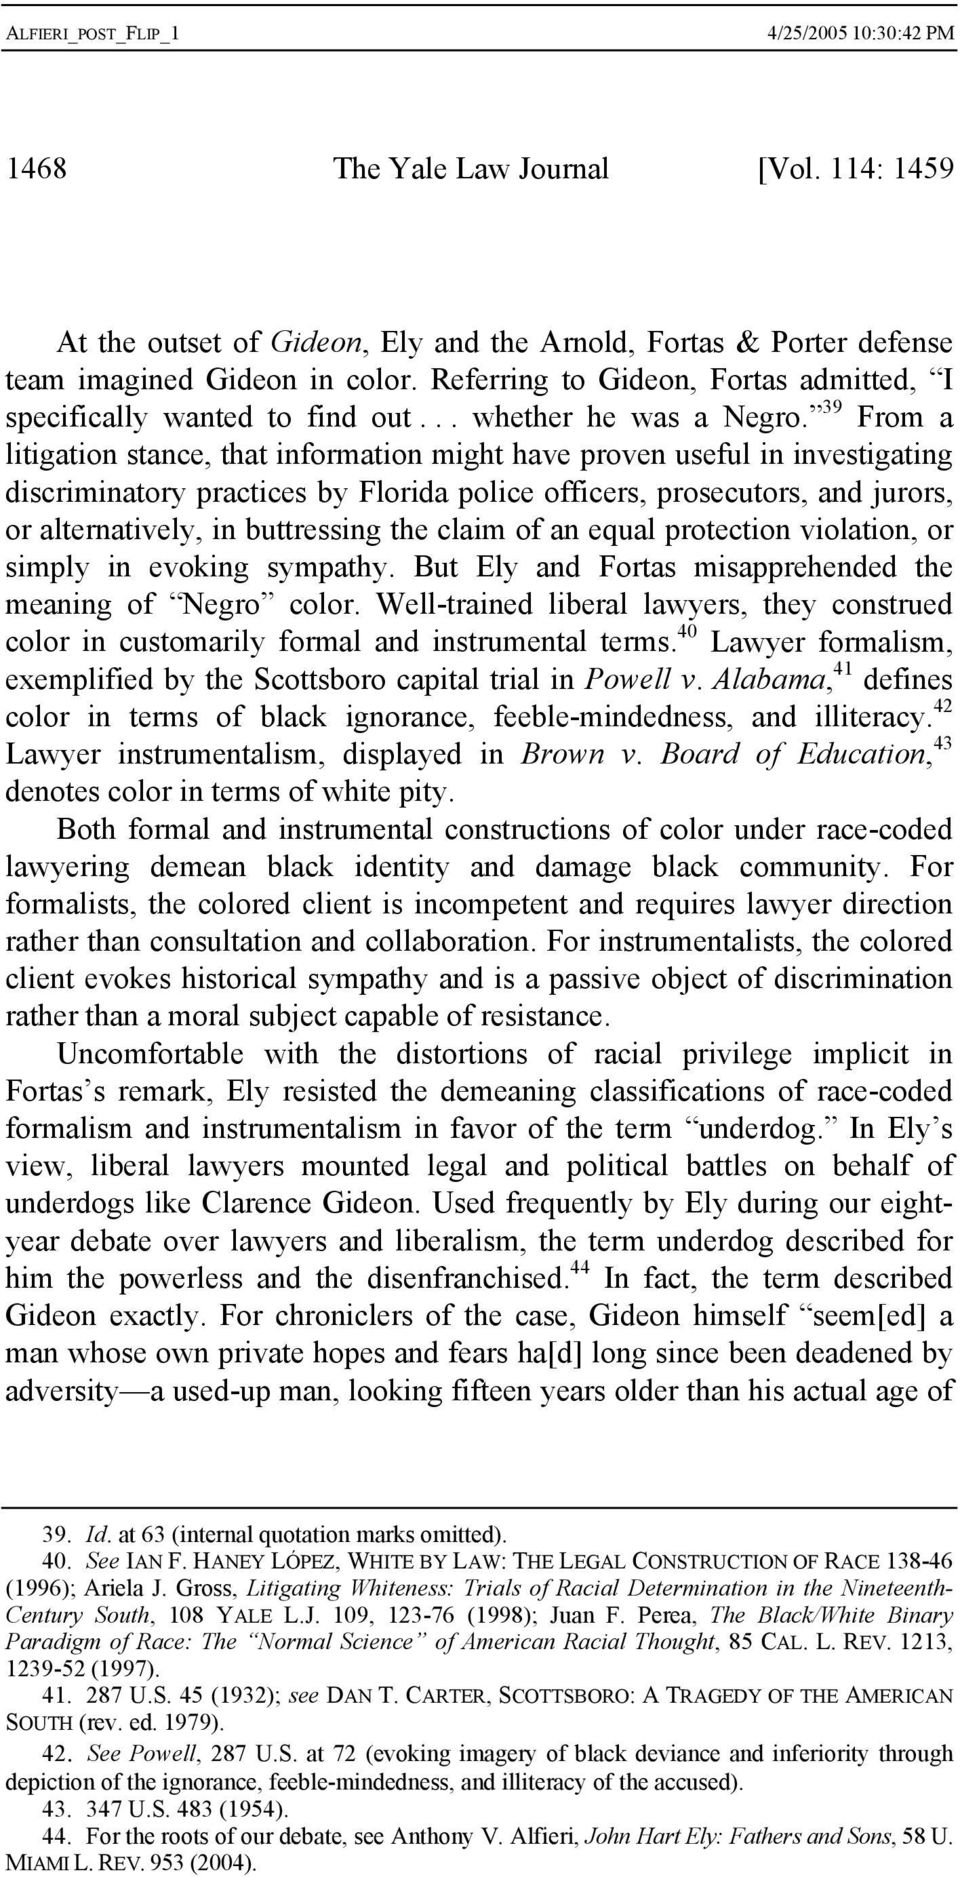 39 From a litigation stance, that information might have proven useful in investigating discriminatory practices by Florida police officers, prosecutors, and jurors, or alternatively, in buttressing